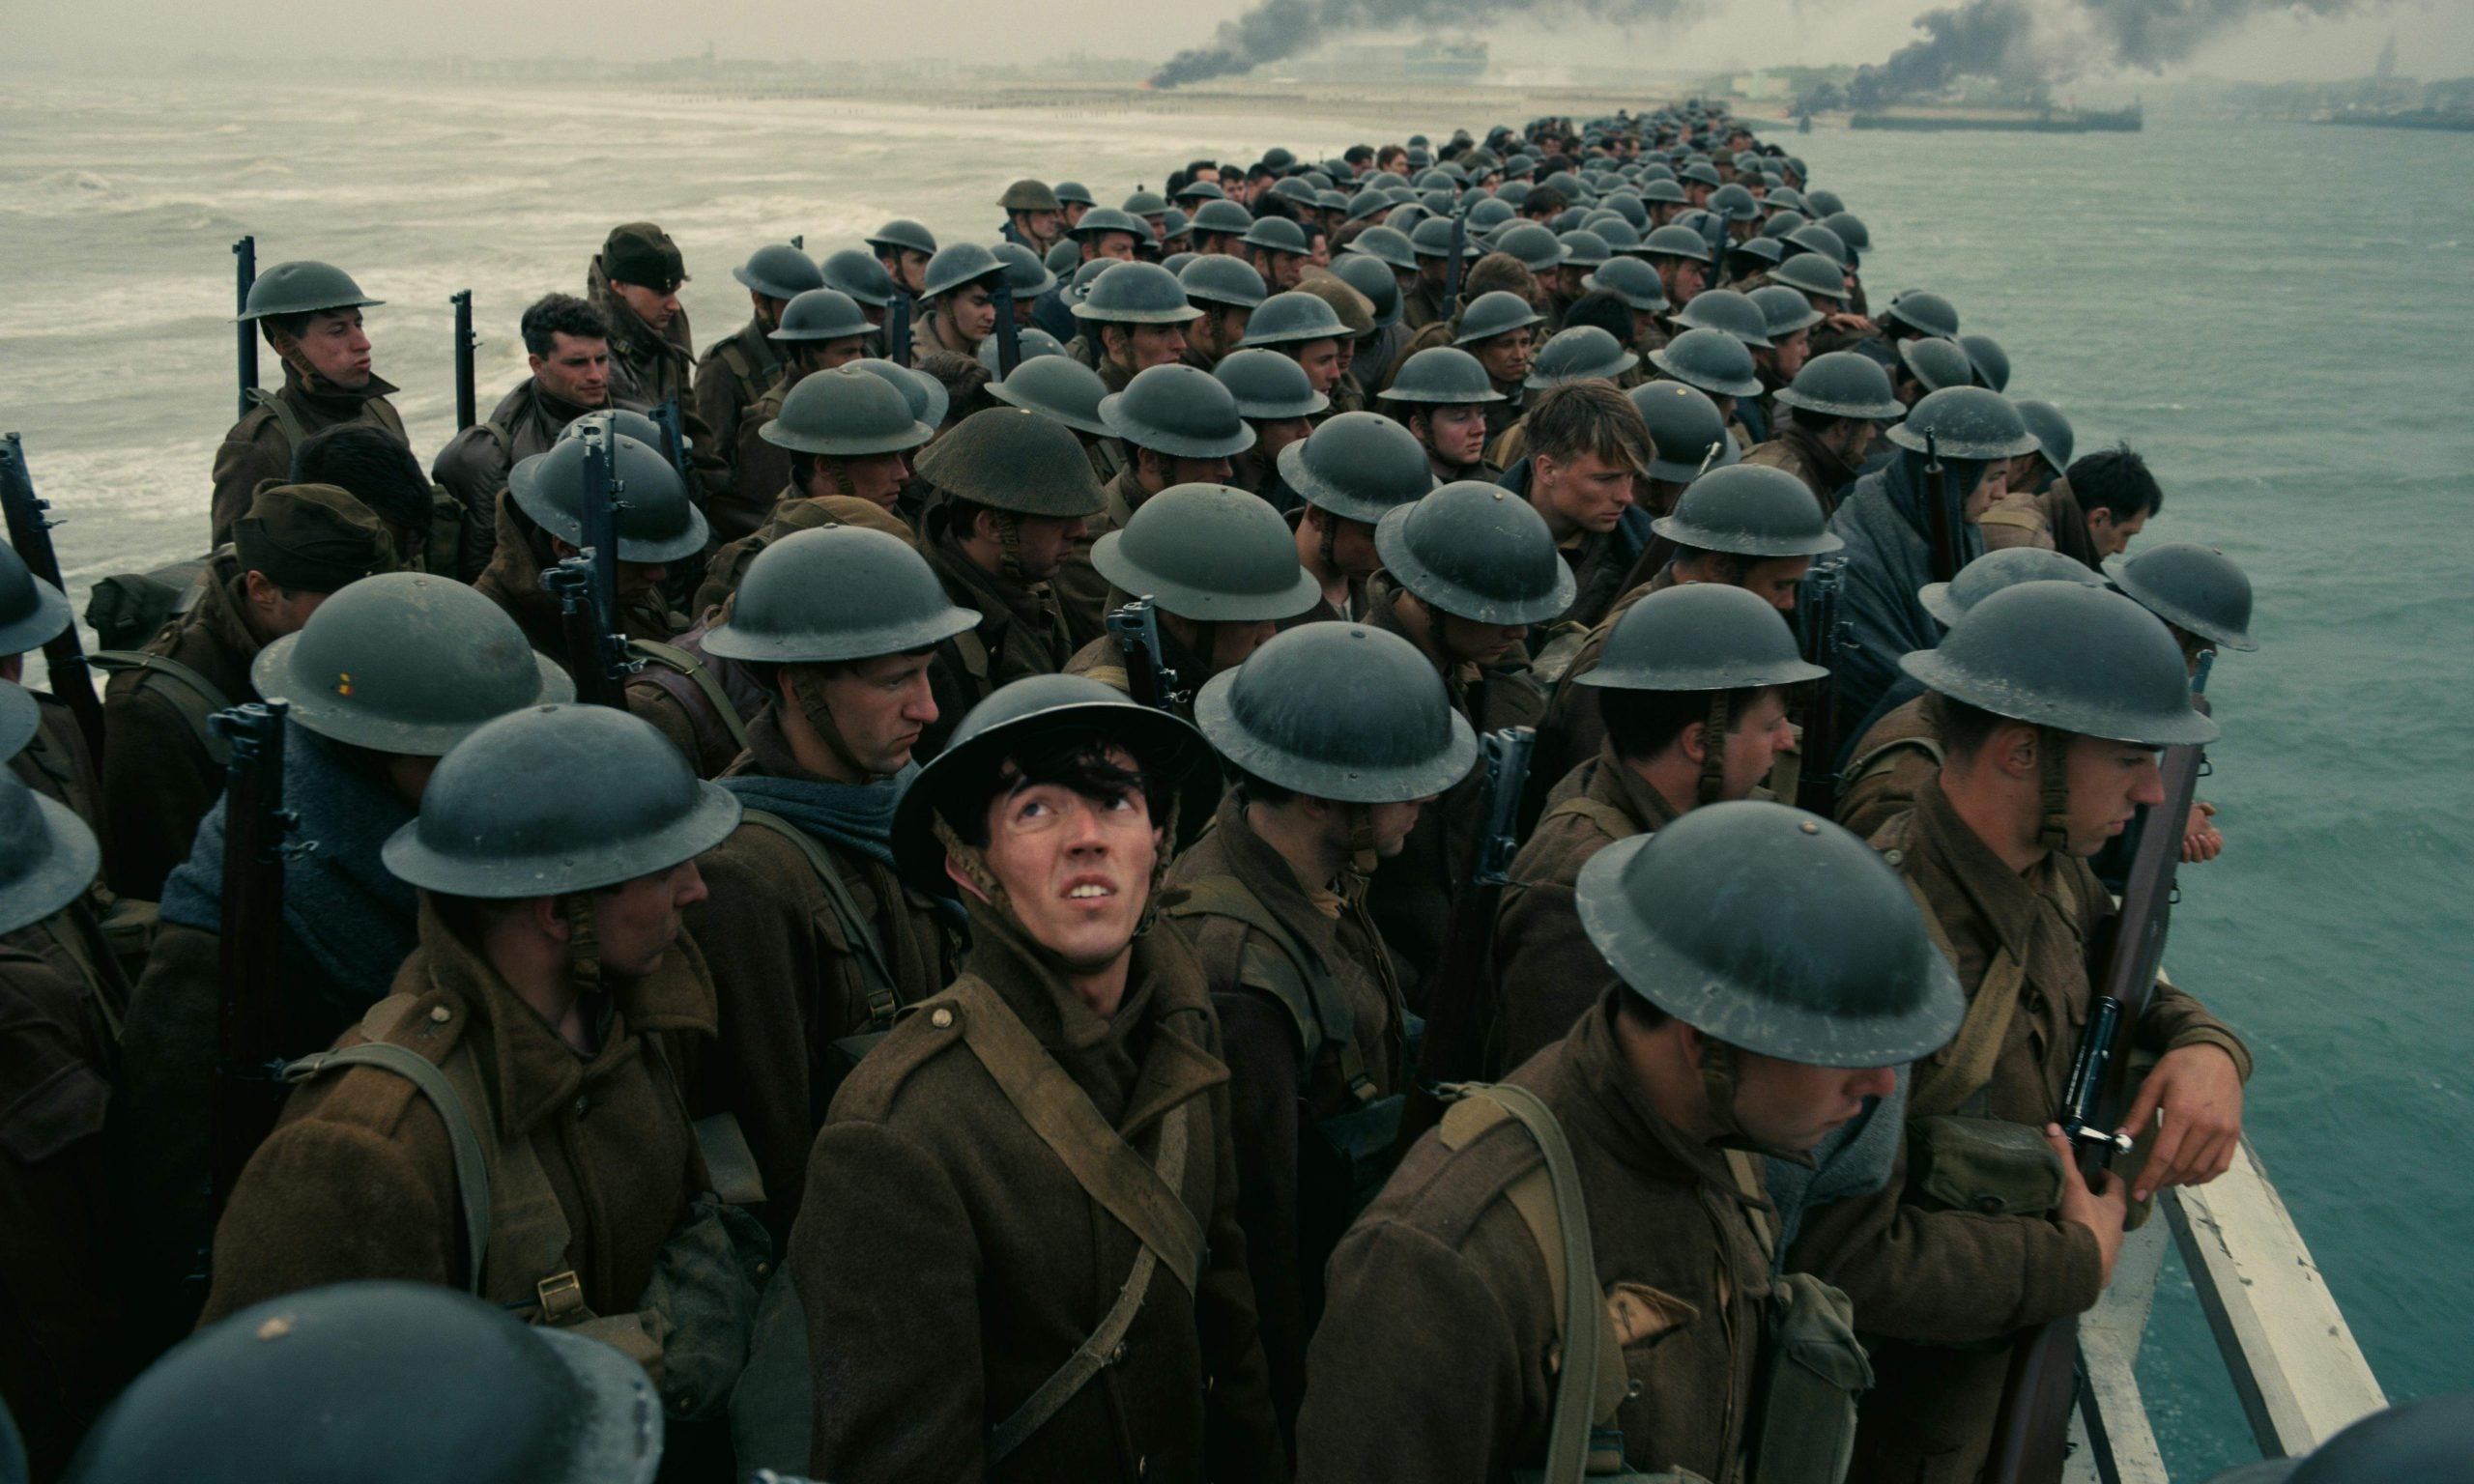 Nigel Farage's love for Dunkirk shows how Brexiteers learned the wrong lessons from WWII